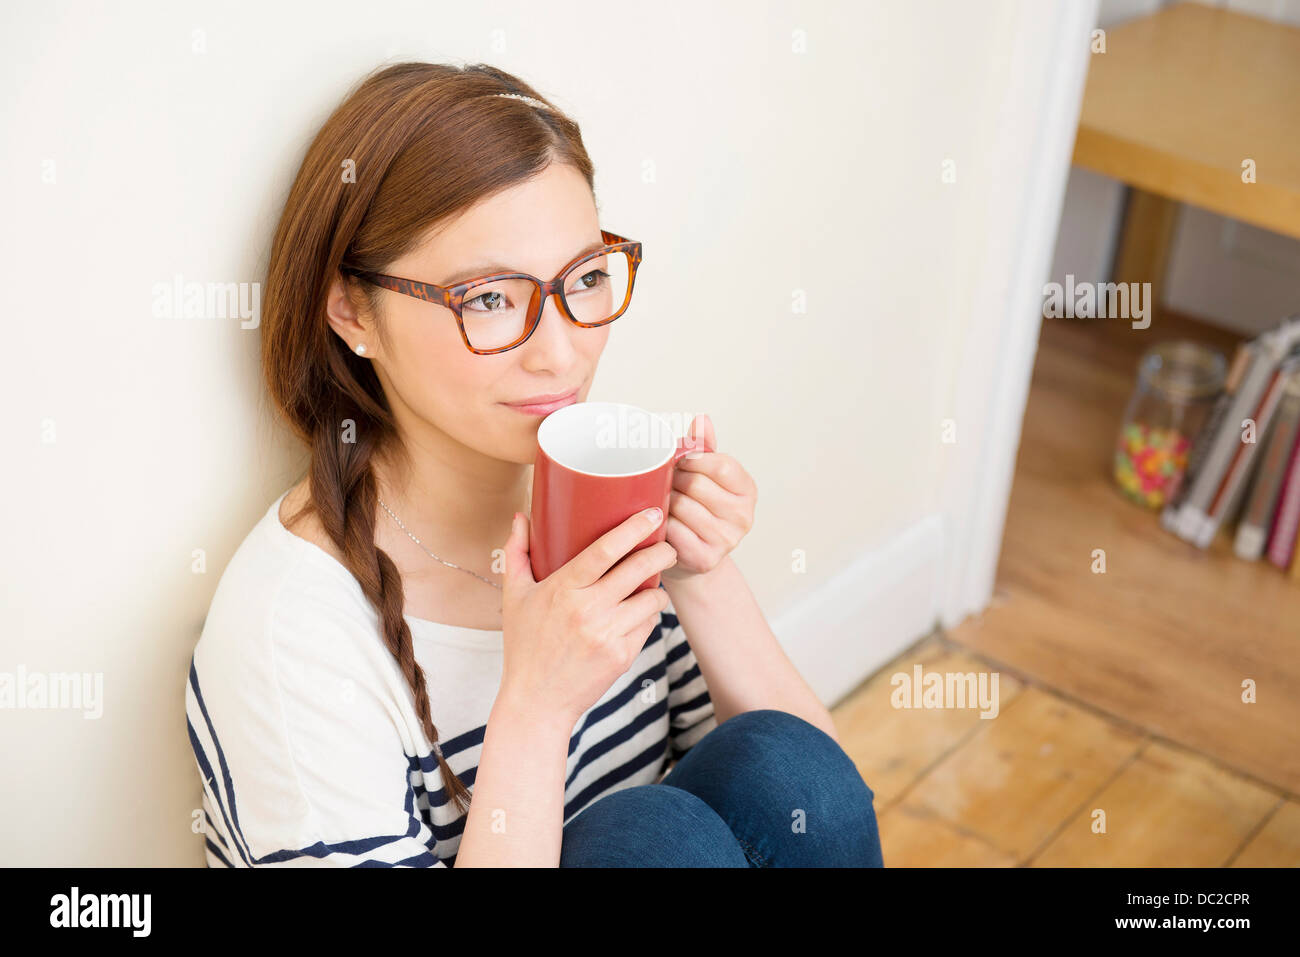 Woman day dreaming with mug of drink - Stock Image